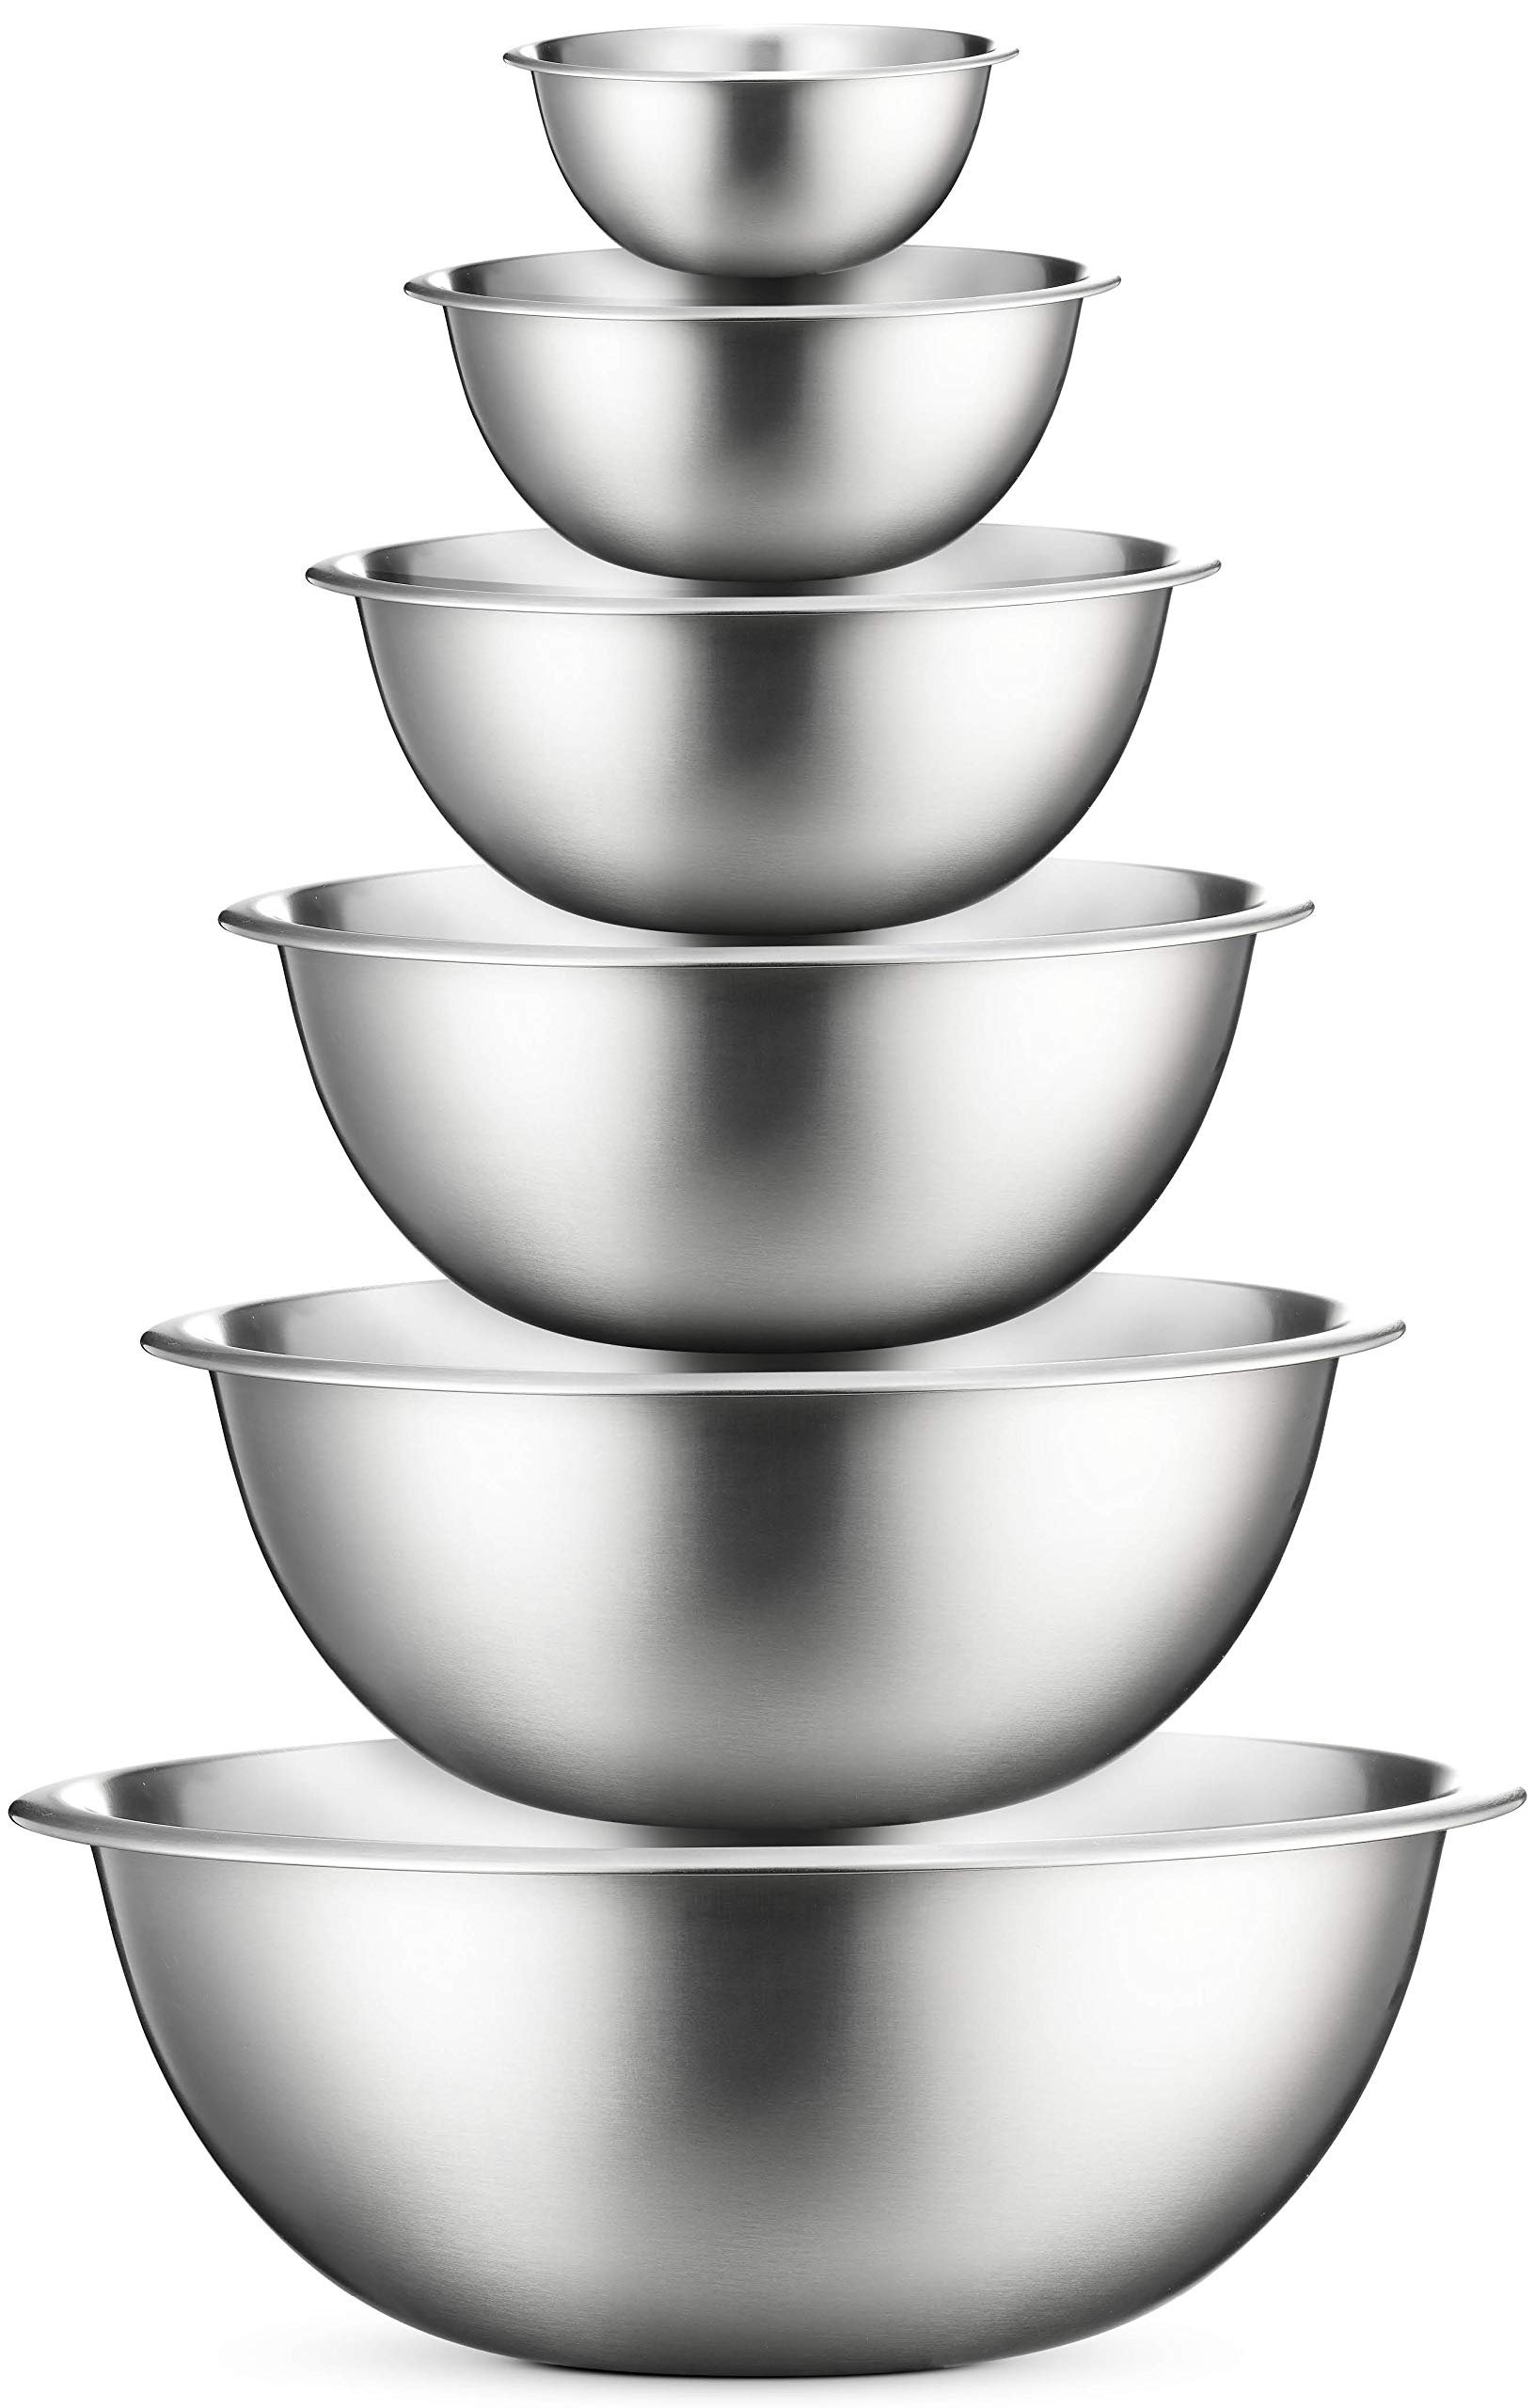 Premium Stainless Steel Mixing Bowls (Set of 6) Brushed Stainless Steel Mixing Bowl Set - Easy To Clean, Nesting Bowls for Space Saving Storage, Great for Cooking, Baking, Prepping by FINEDINE